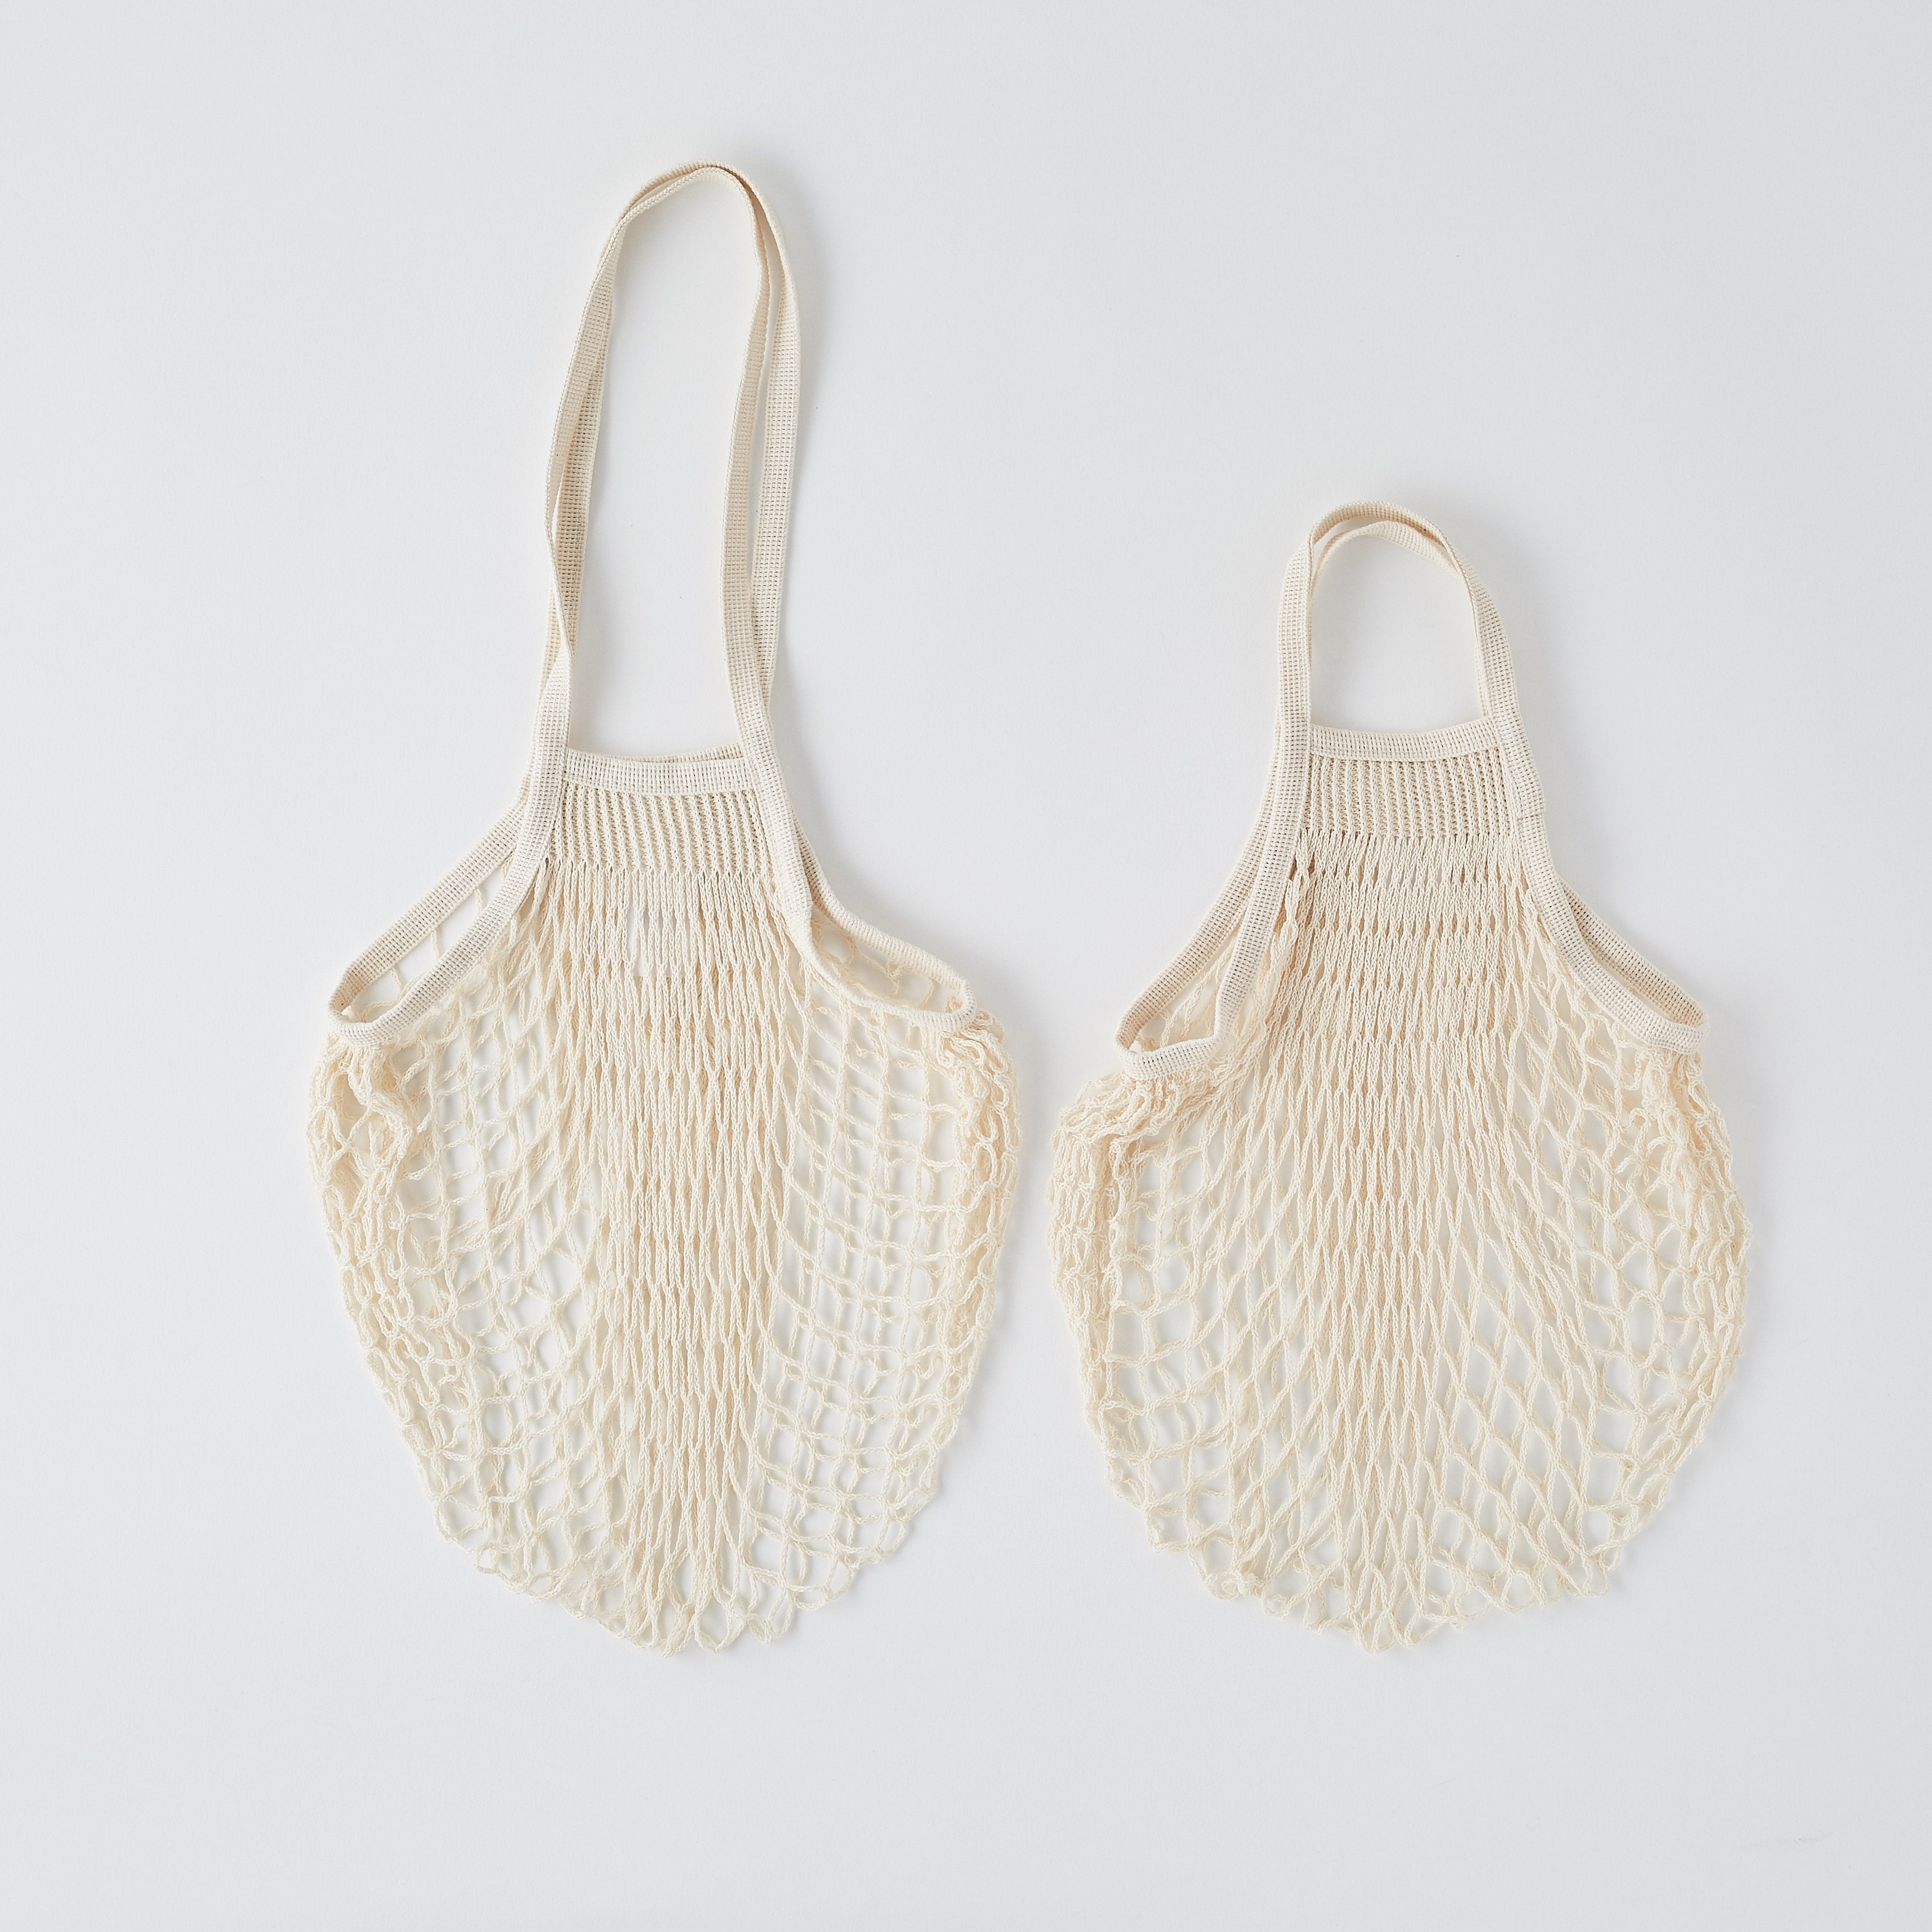 Florence round shopper basket grace gordon for How to weave a net with string